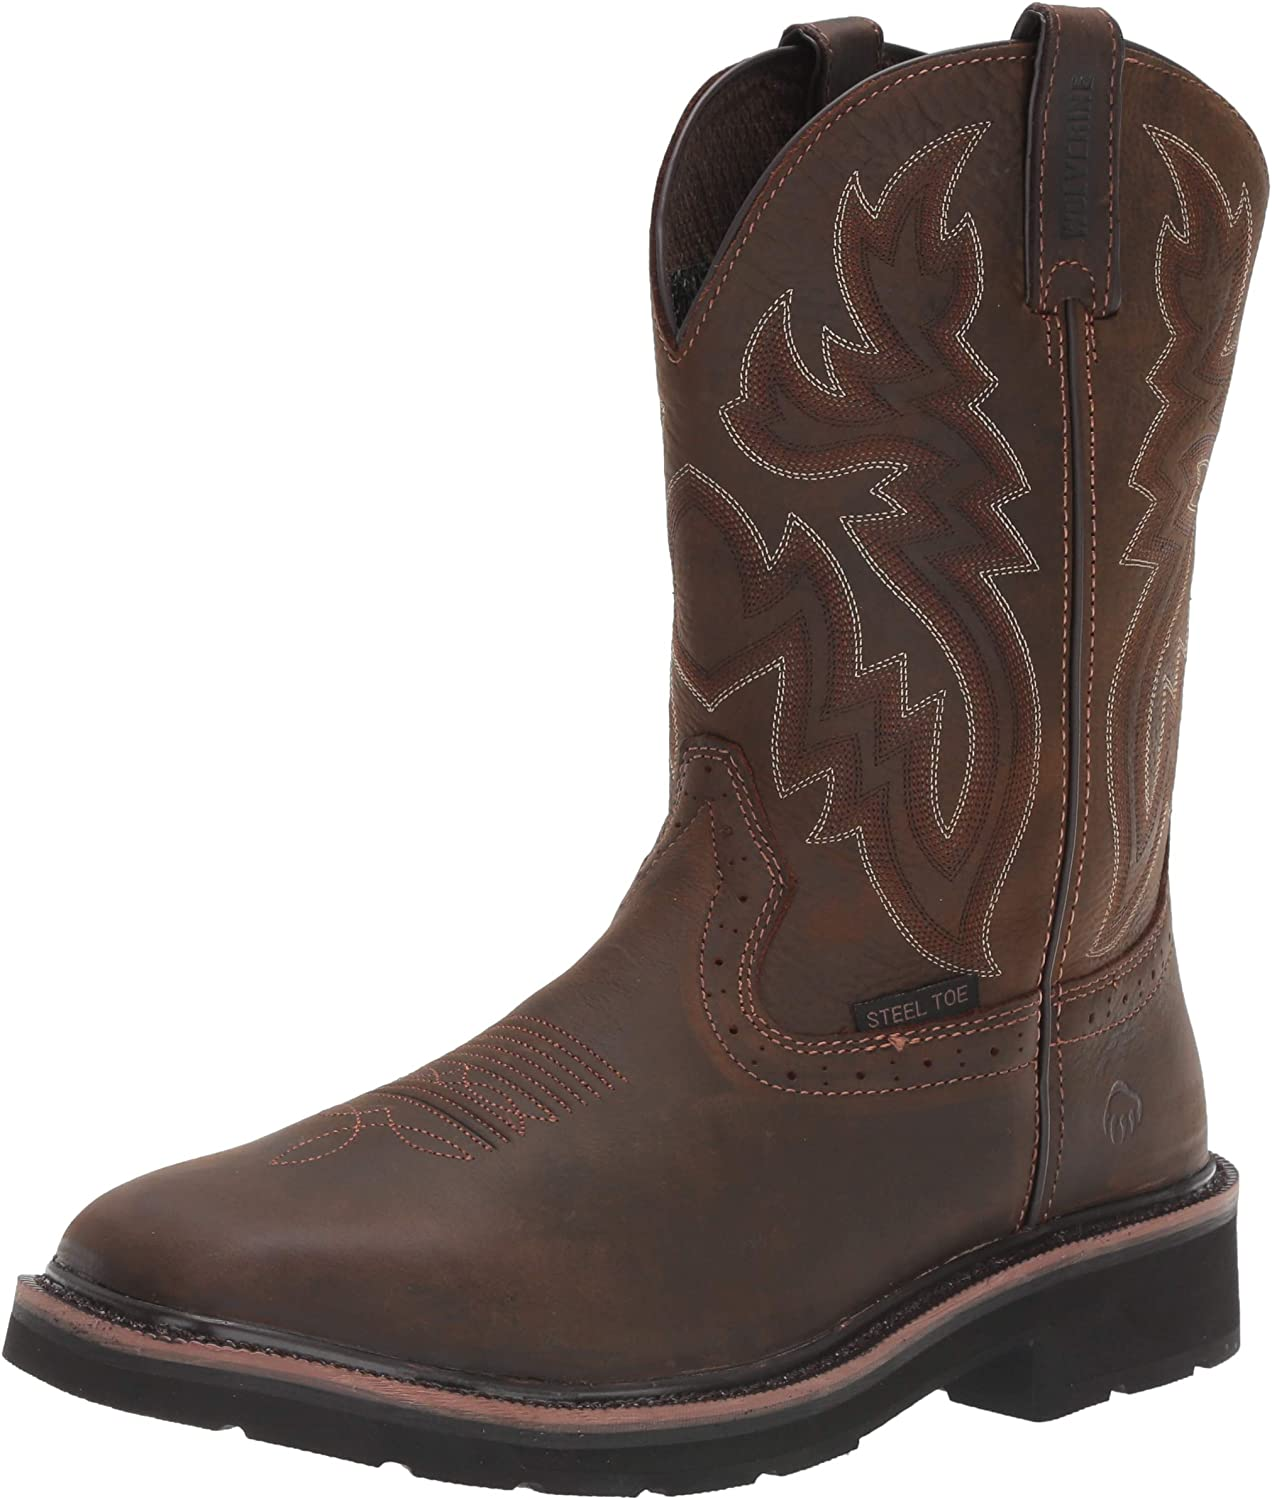 """Wolverine Men's Rancher 10"""" Square Toe Steel Toe Work Boot: Shoes"""